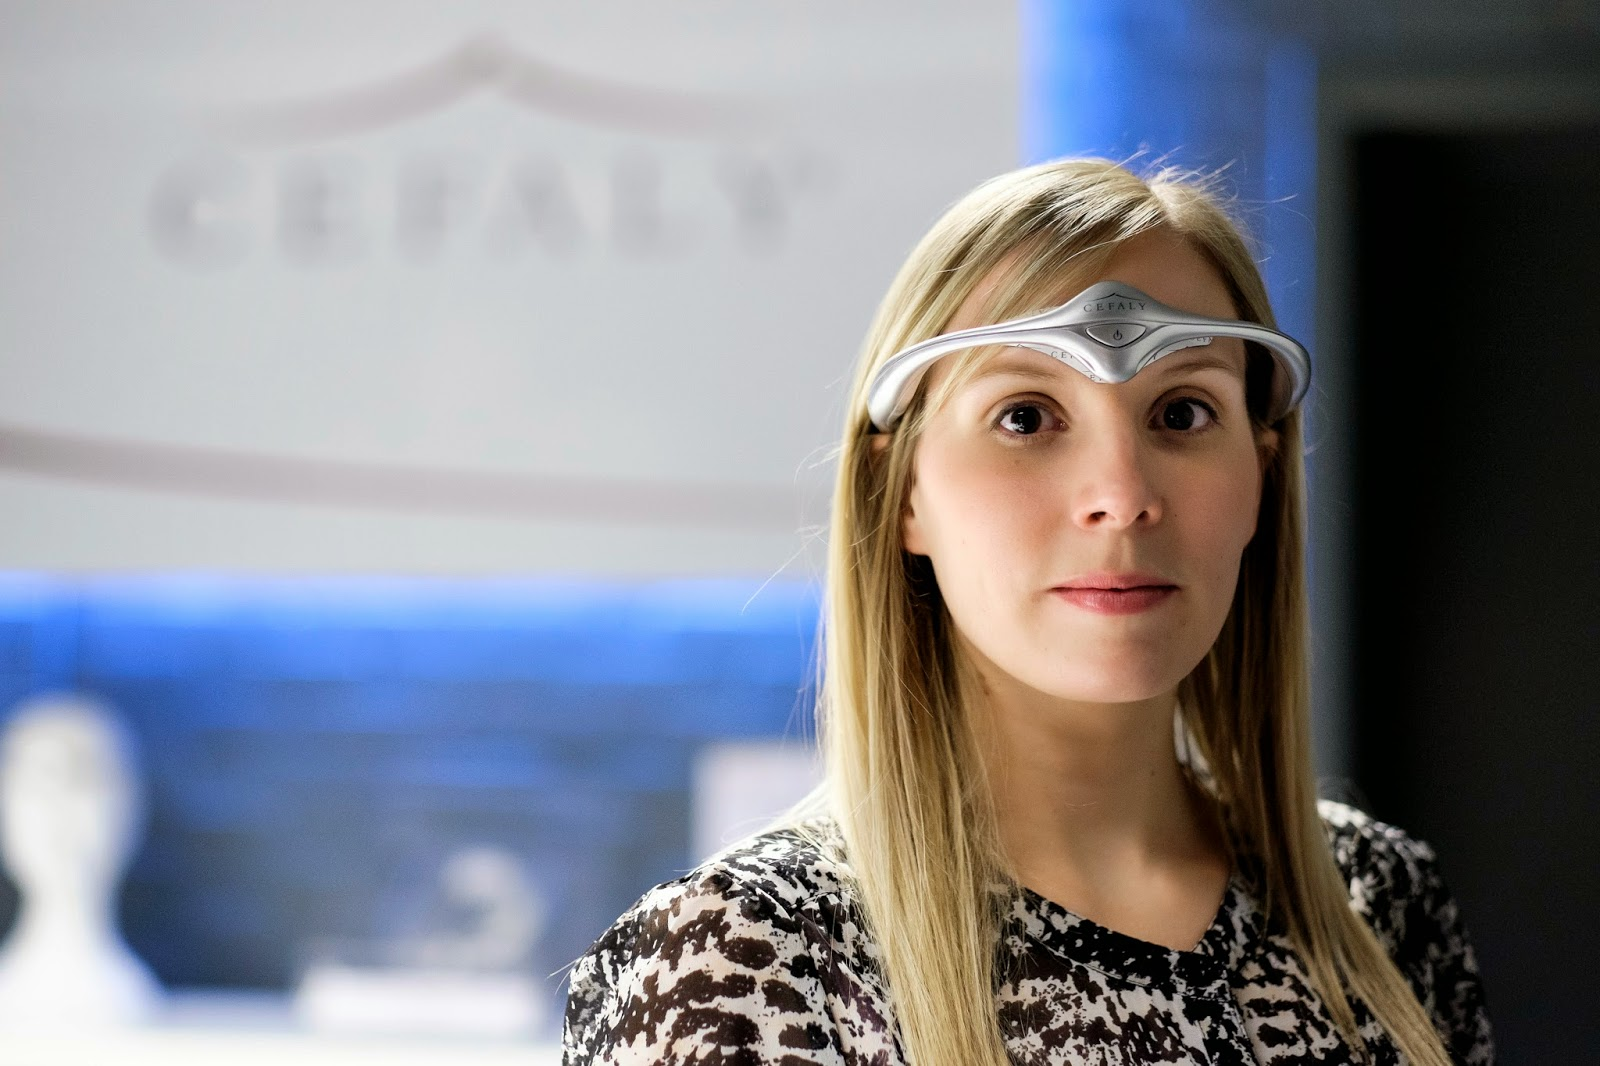 Anti-migraine, Belgium, Cefaly, Cefaly Technology, Electronic, Headache, Headband, Health, Herstal, Medical, Pain, Pain Relief Device, Science, Technology,